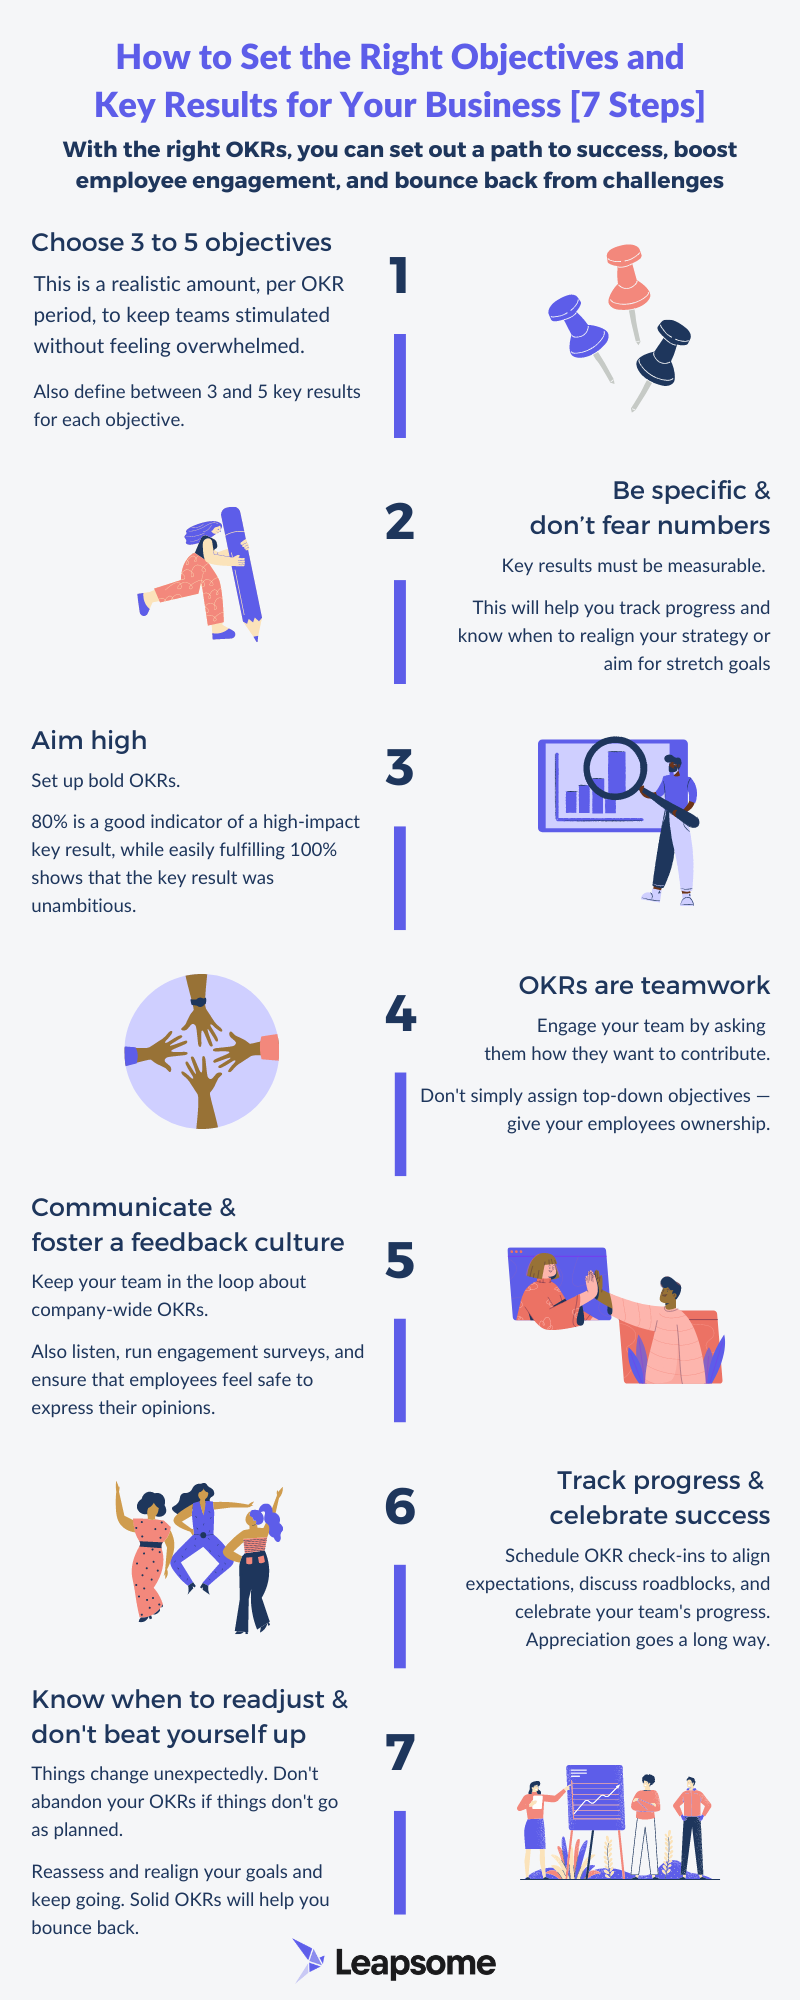 How to Set the Right Objectives and Key Results for Your Business [7 Steps] [Infographic] by Leapsome